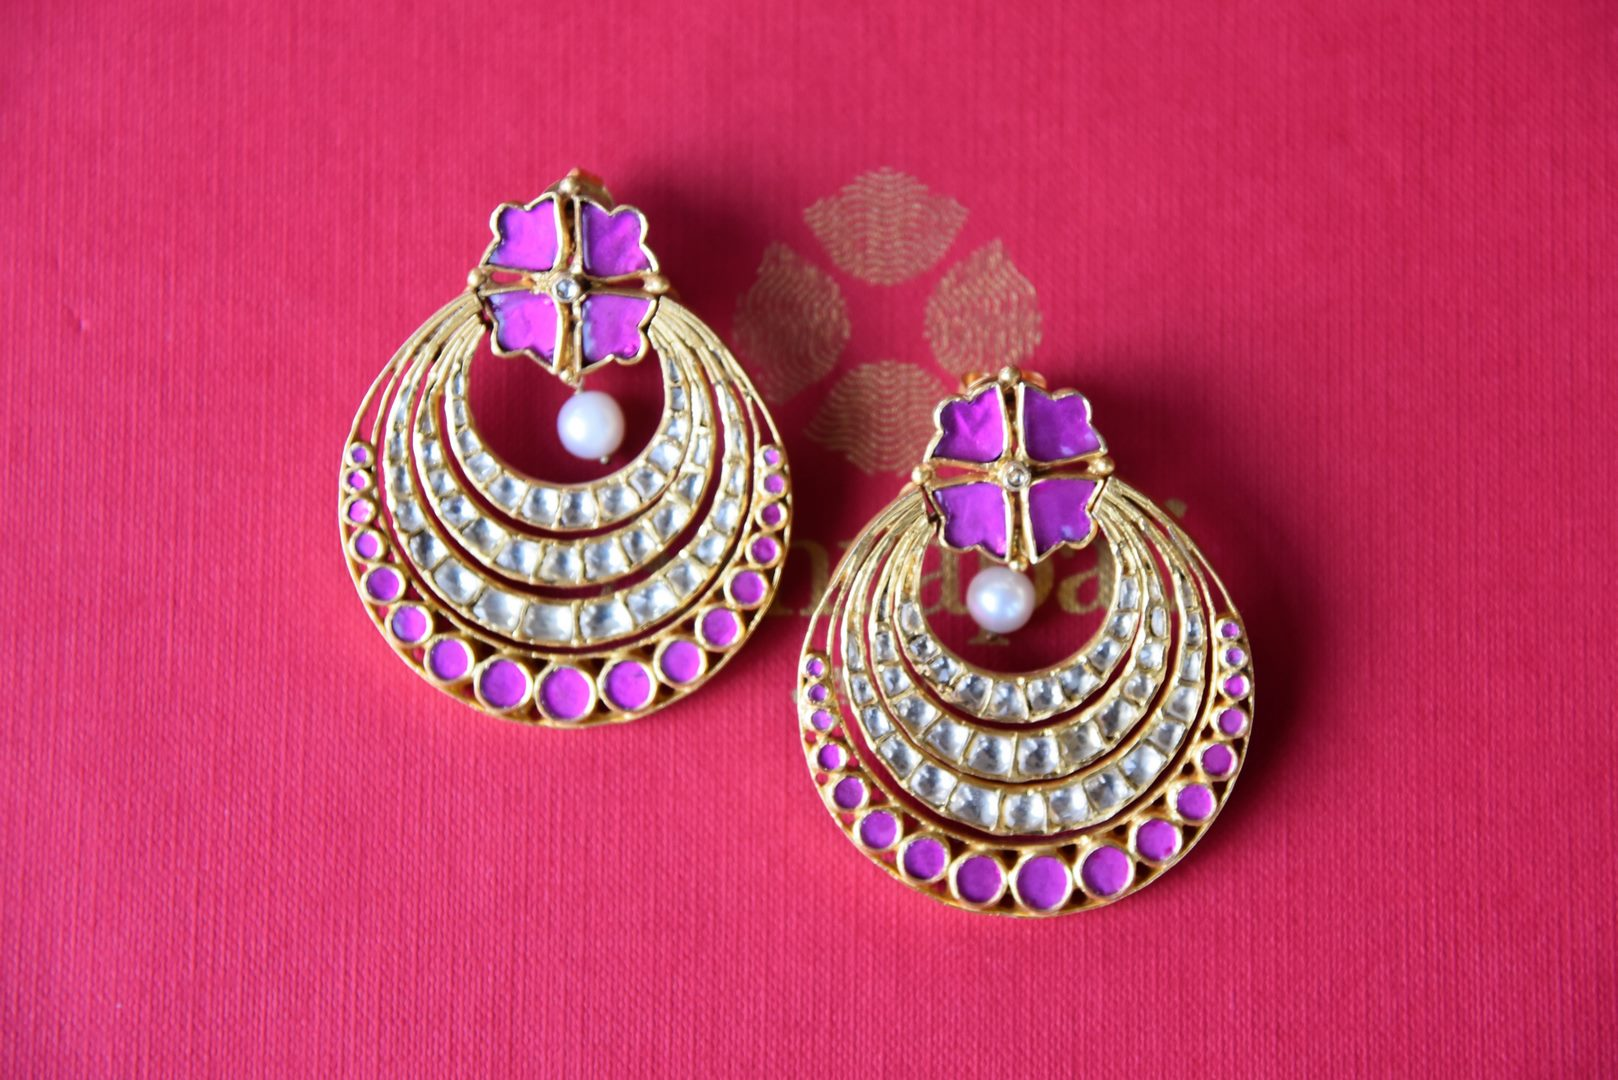 Shop silver gold plated round earrings by Amrapali online in USA with white and pink glass. Get festival ready with a range of exquisite handcrafted Indian silver gold plated jewelry from Pure Elegance Indian clothing store in USA.-flatlay